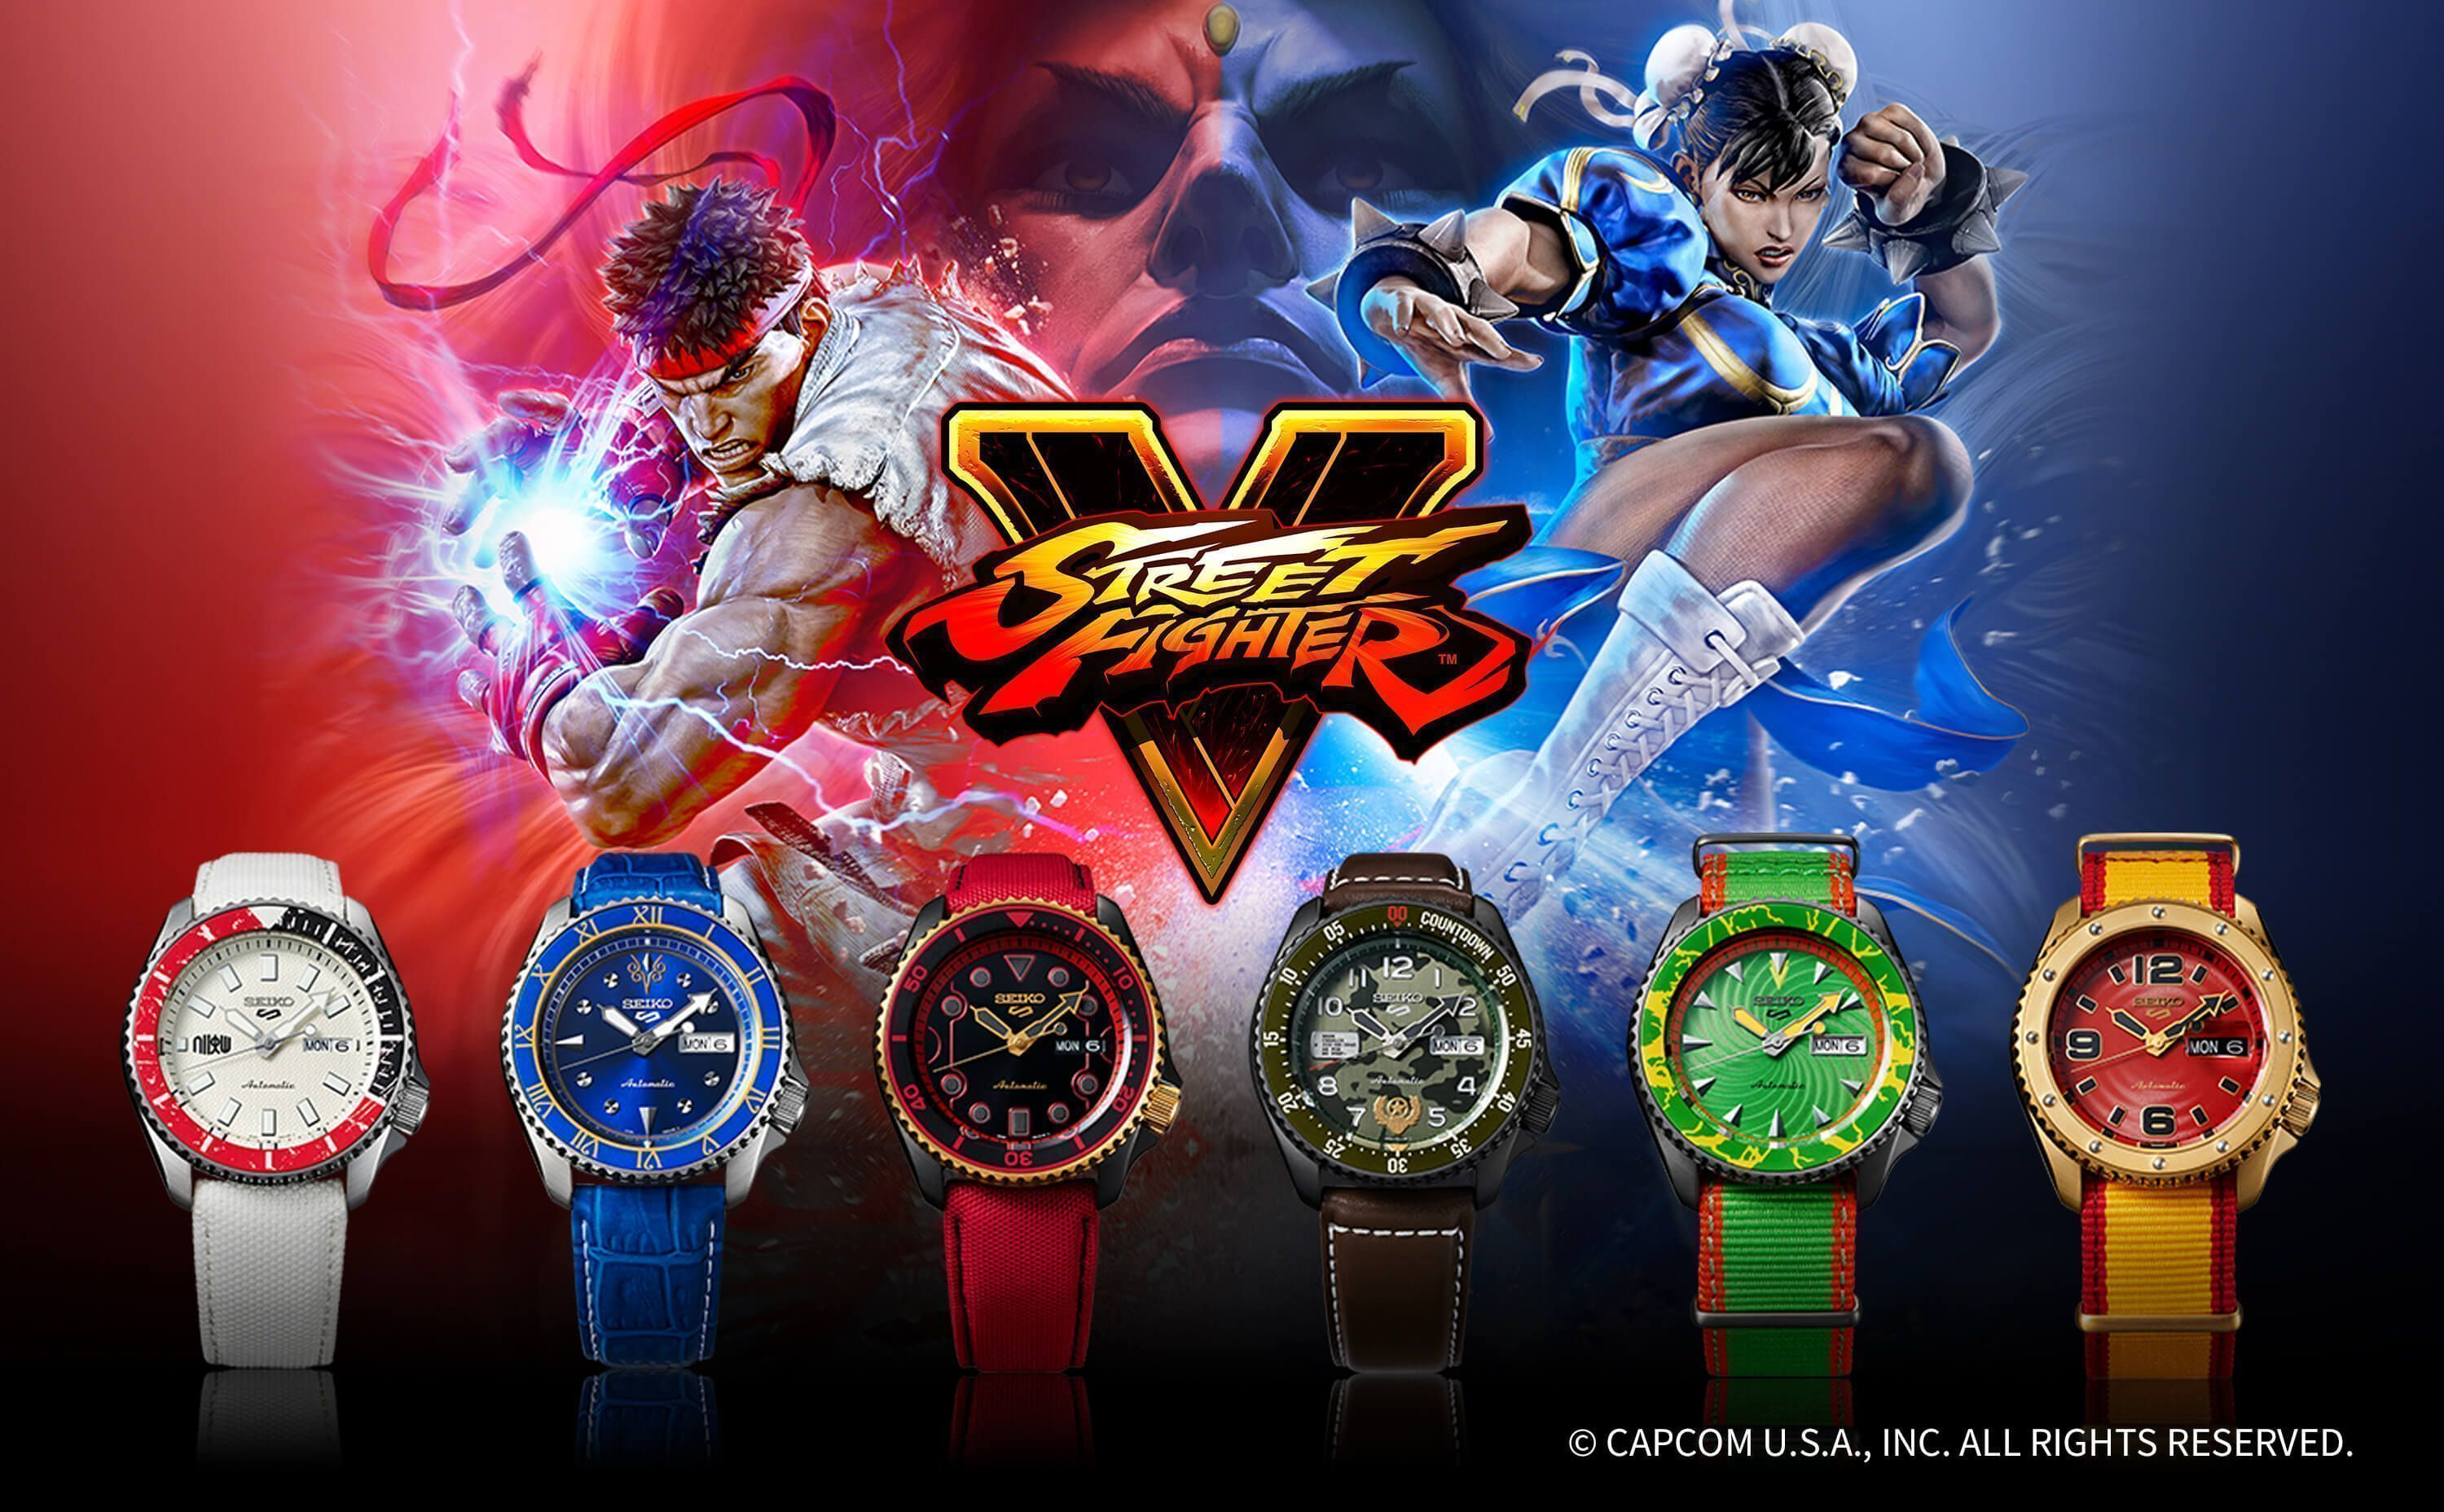 Seiko 5 - Street Fighter V